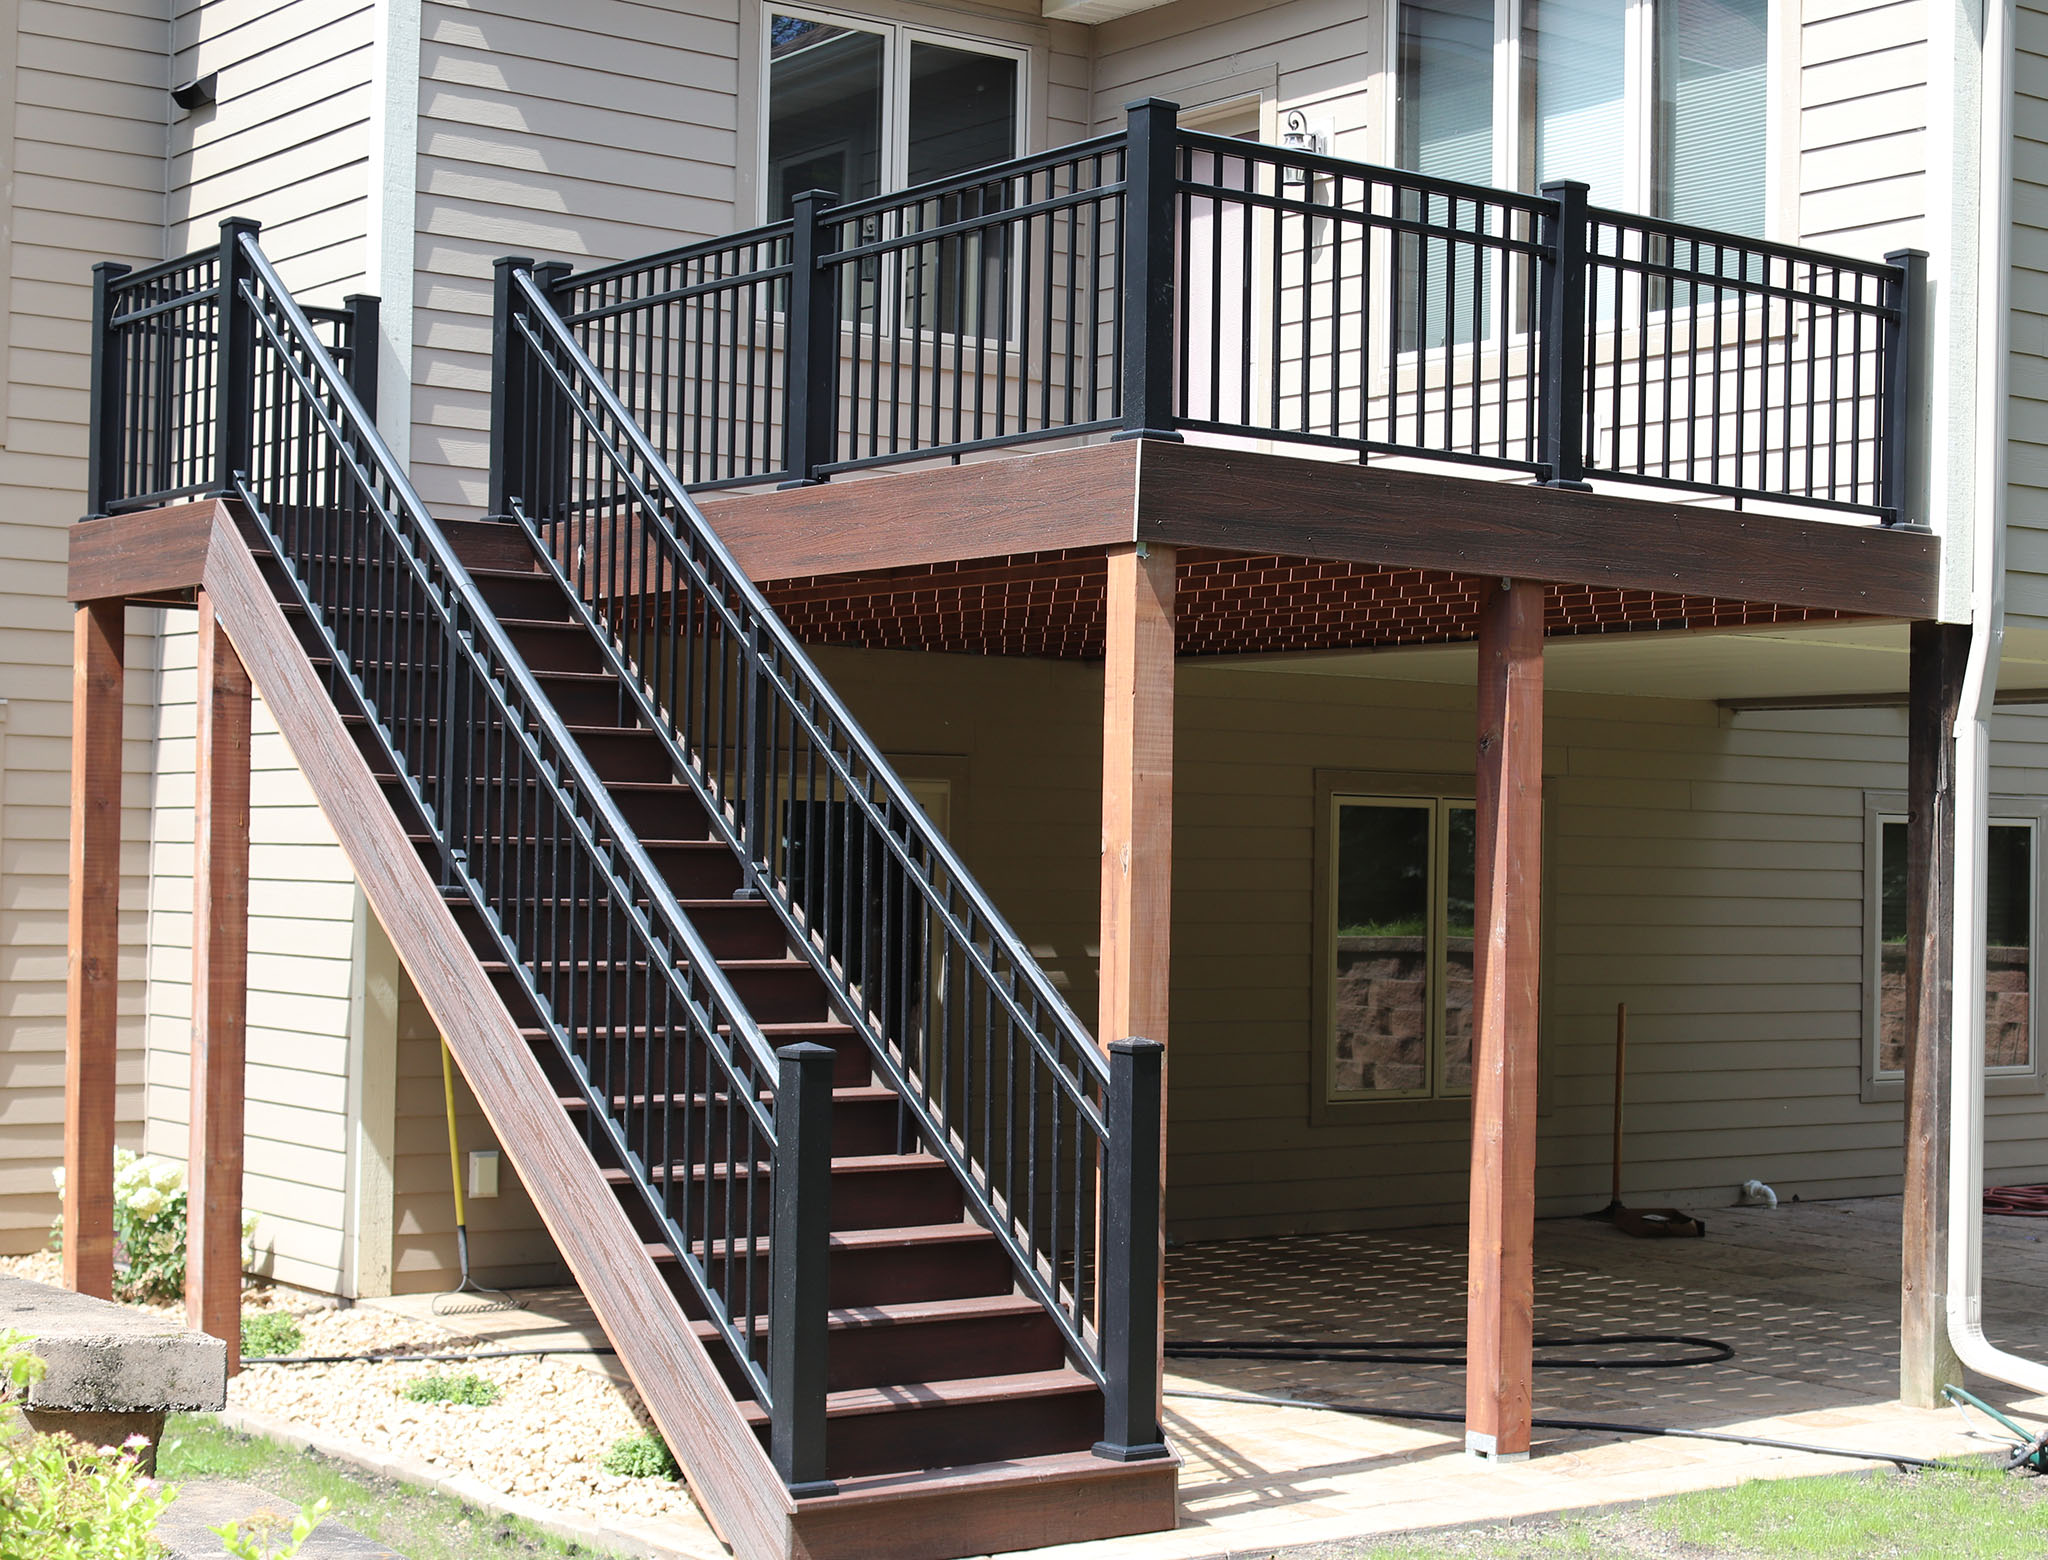 Trex composite decking with square metal balusters and railing, stairway to ground elevation